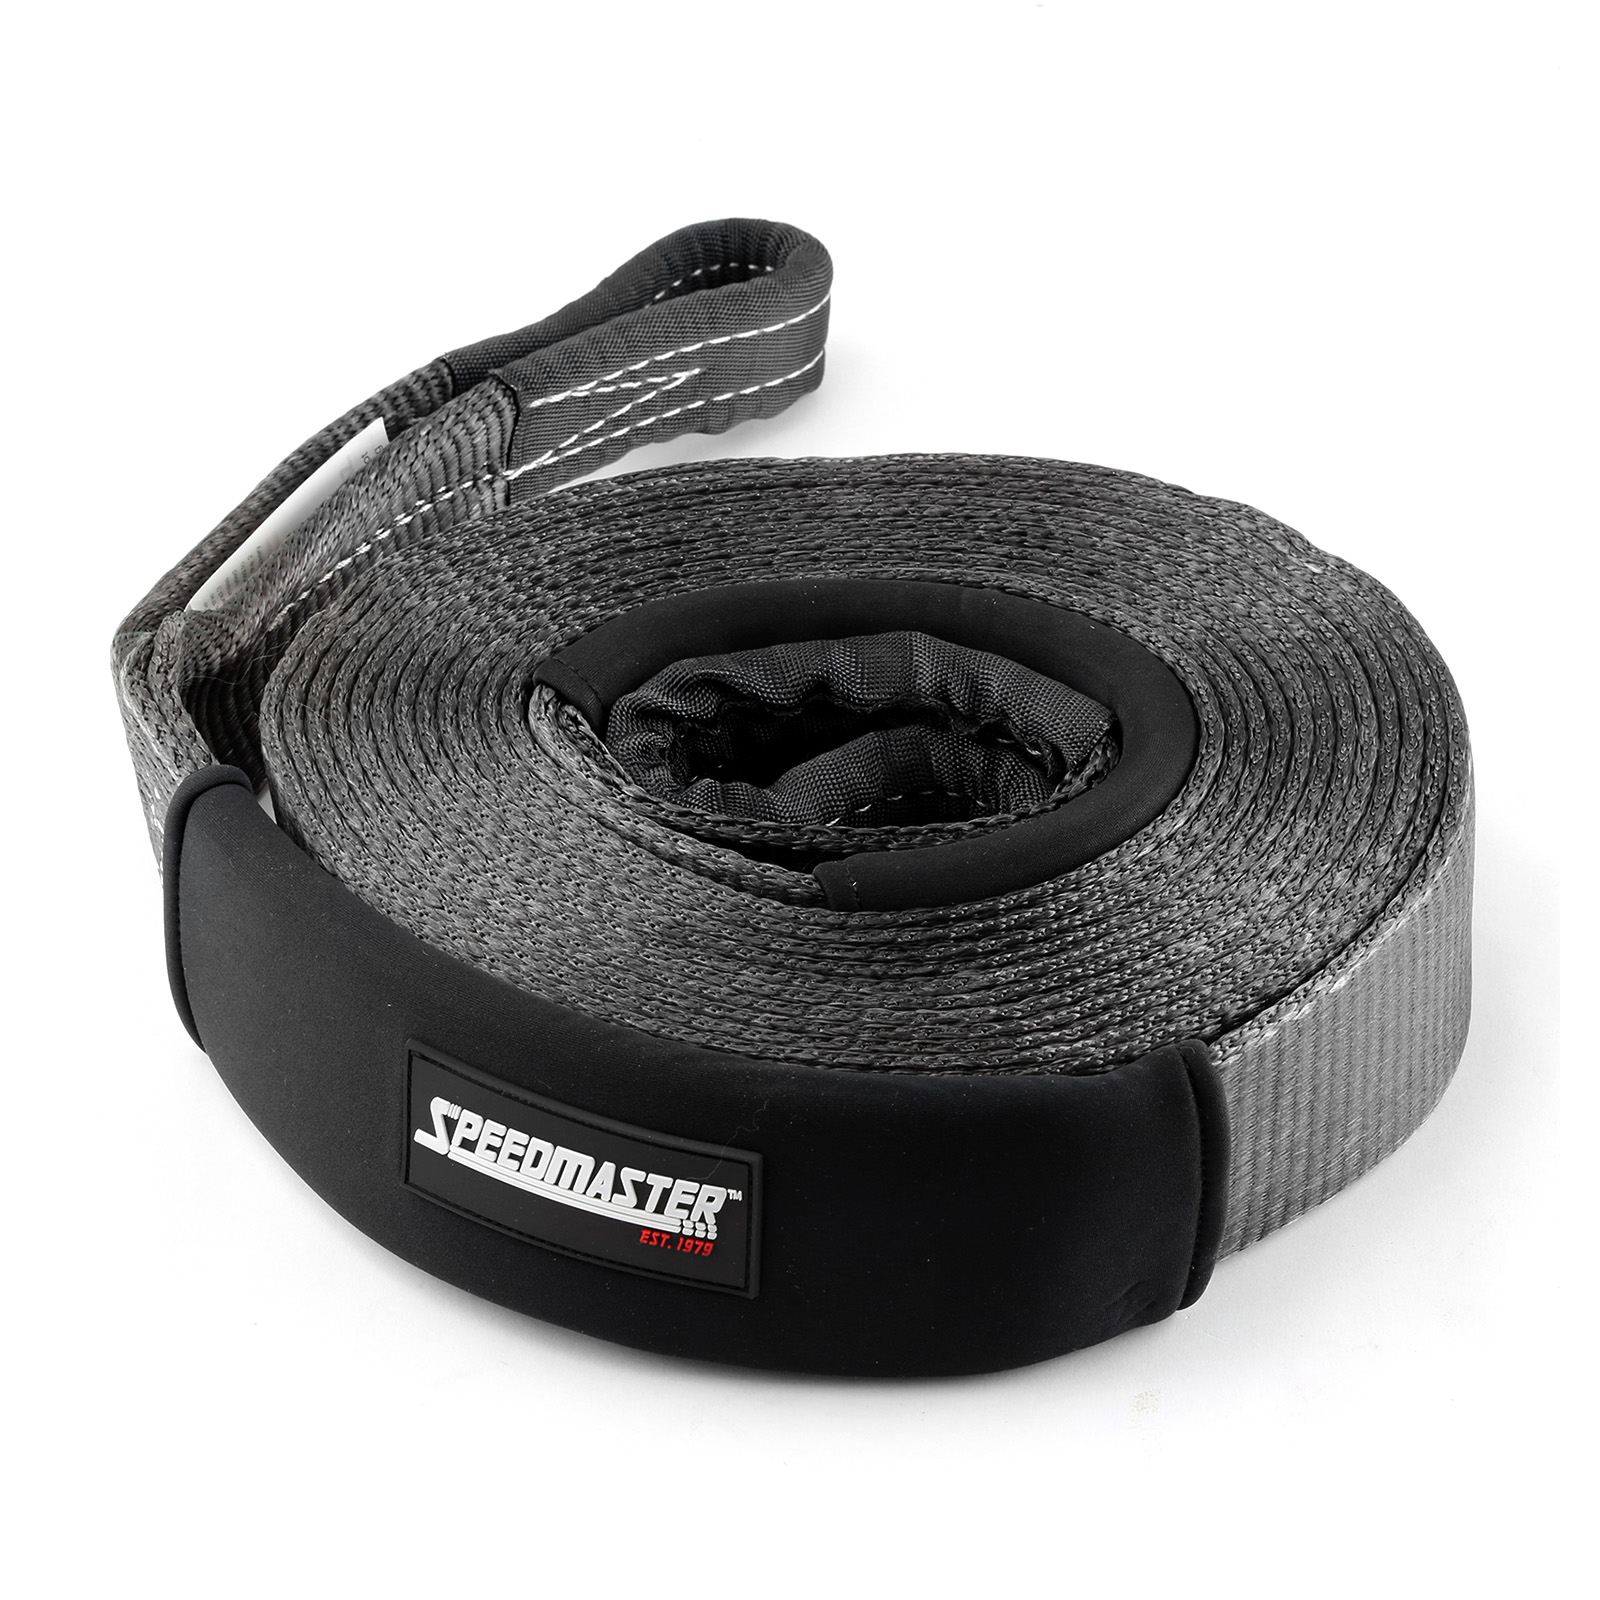 "Speedmaster 24000lbs / 11000kgs 4wd Recovery Tow Snatch Strap 4"" x 30ft"